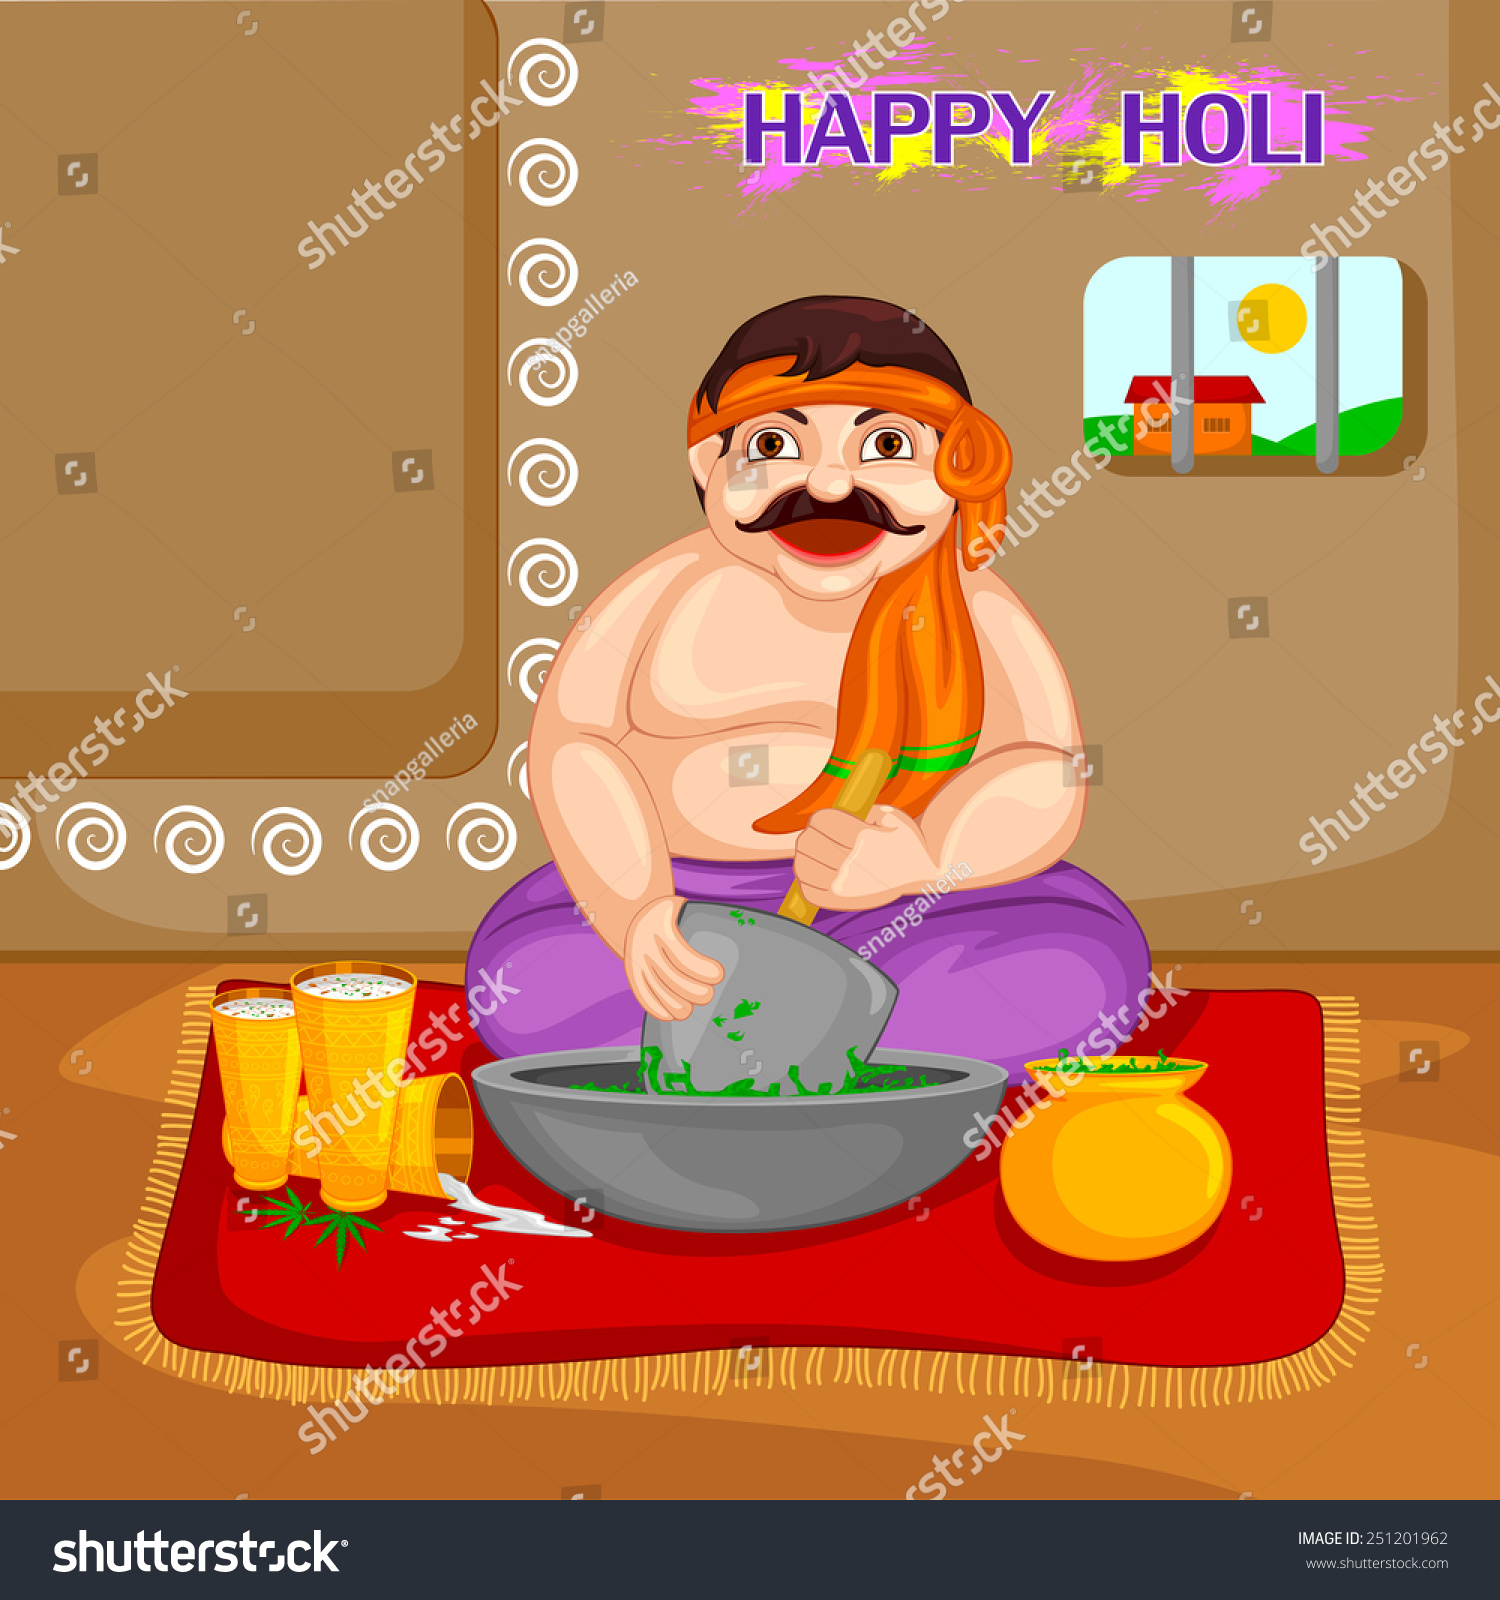 Holi Bhang Ghtate huye Thandai weed Vector, Graphics, Wallpapers, Pictures, Images, Photos, Pics and snaps for Free Download